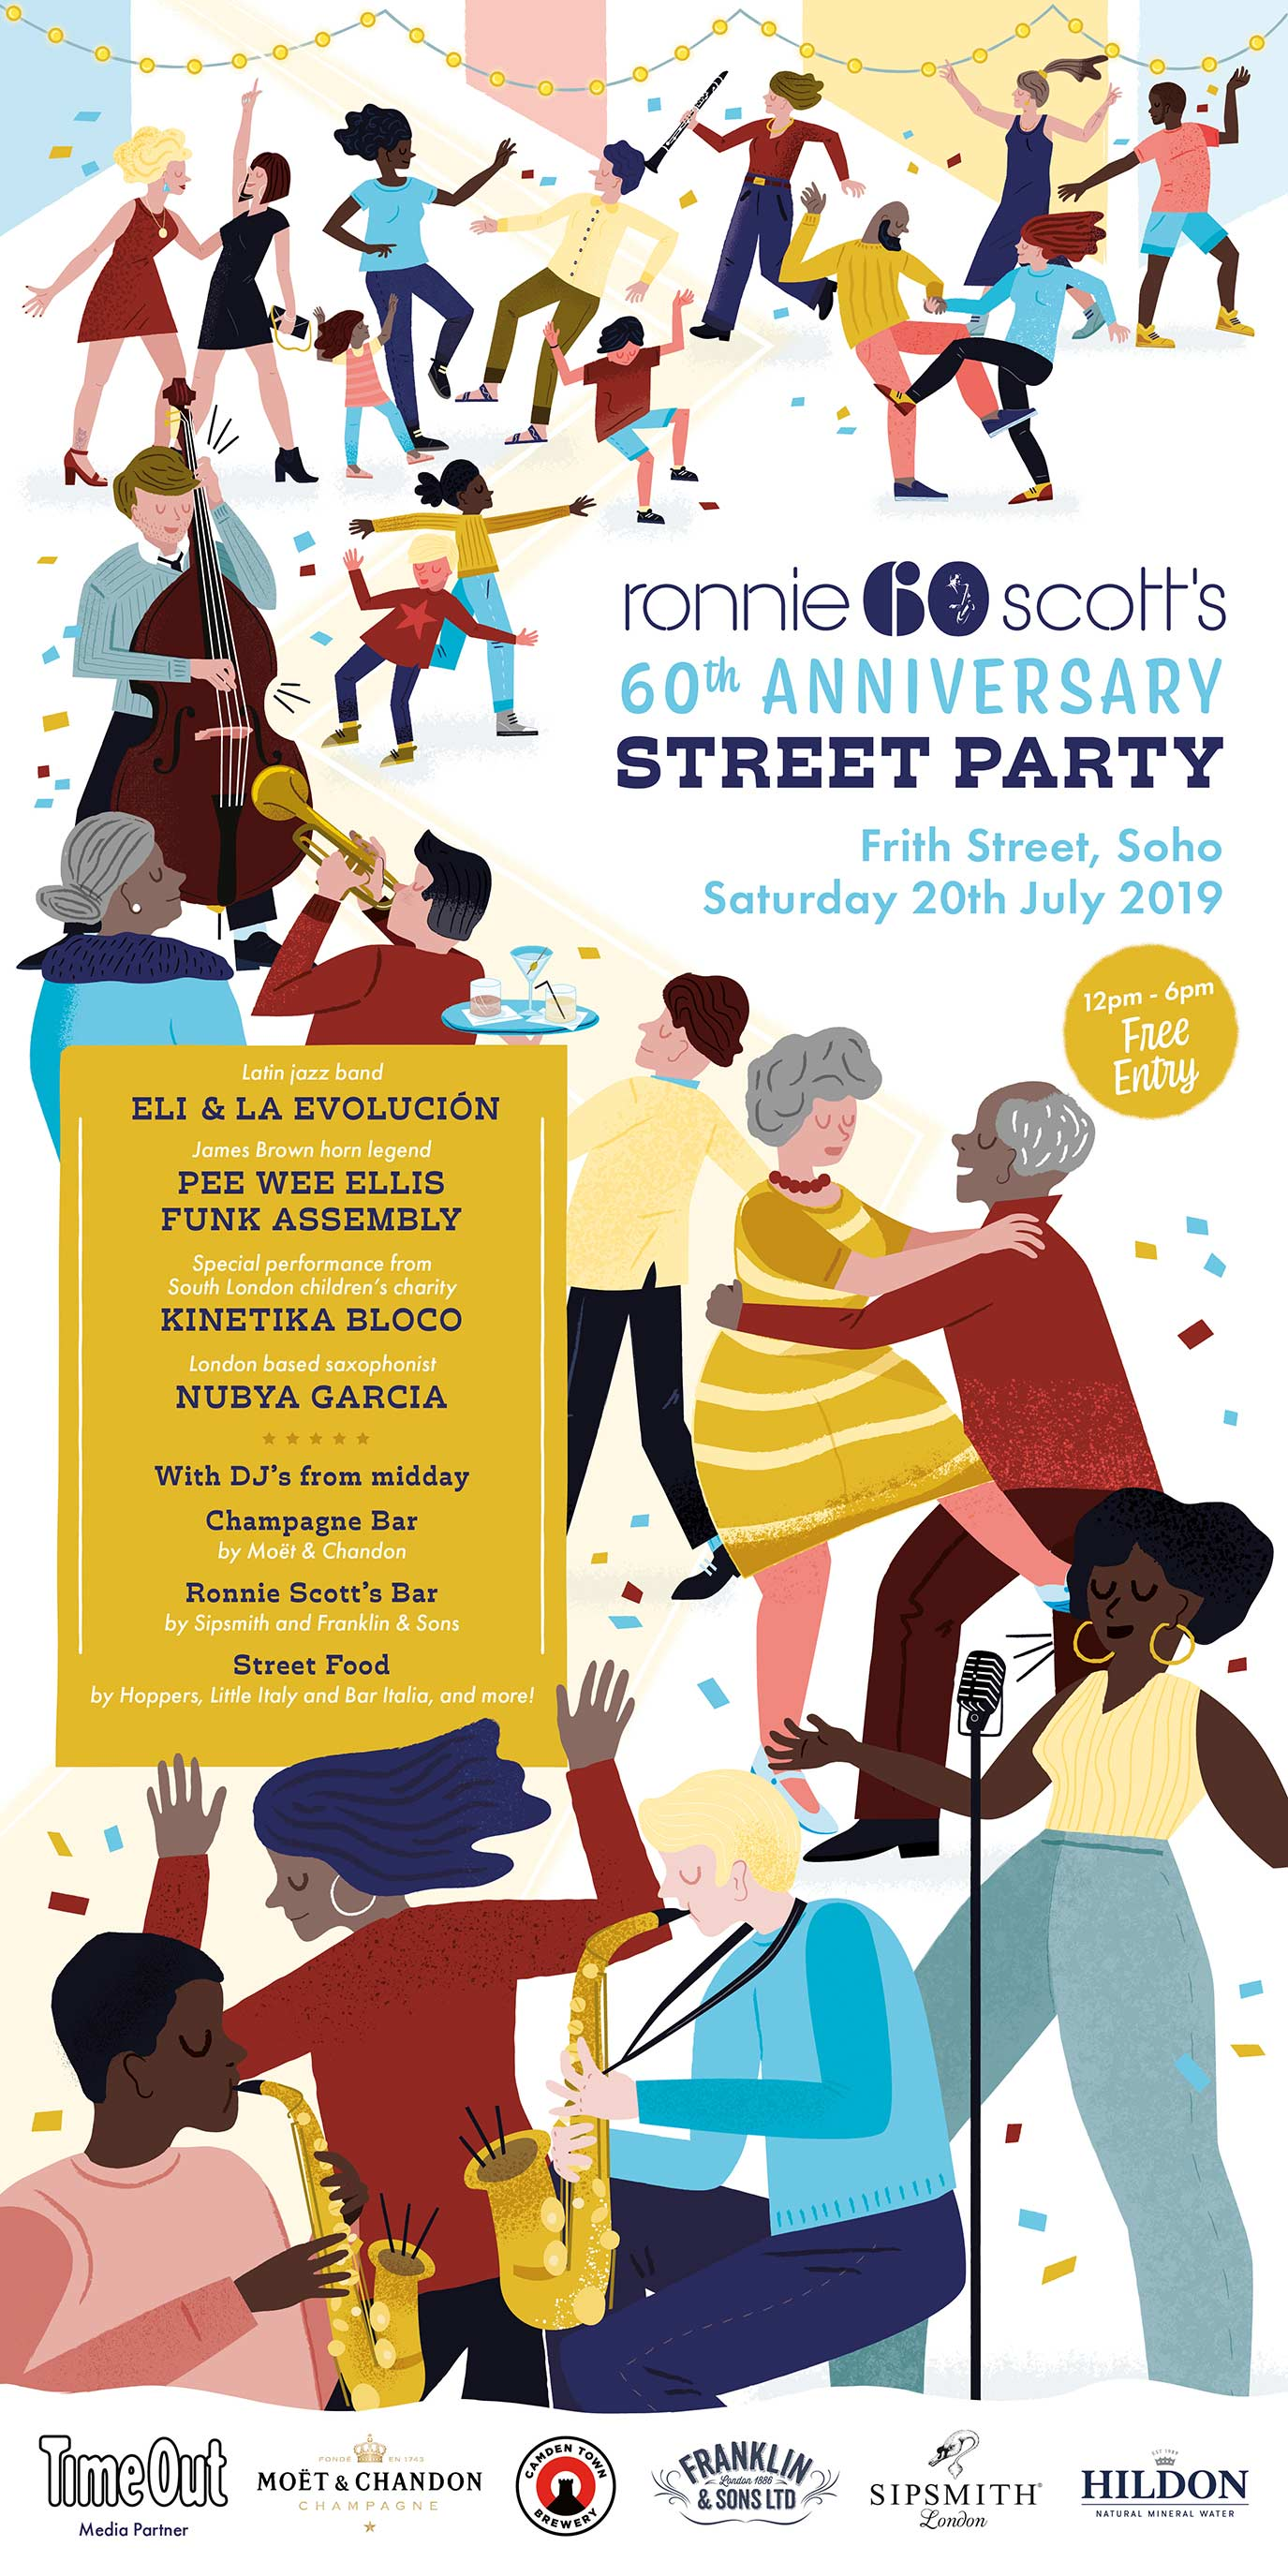 Ronnie Scott's Jazz Club 60th Anniversary Street Party portfolio cover image